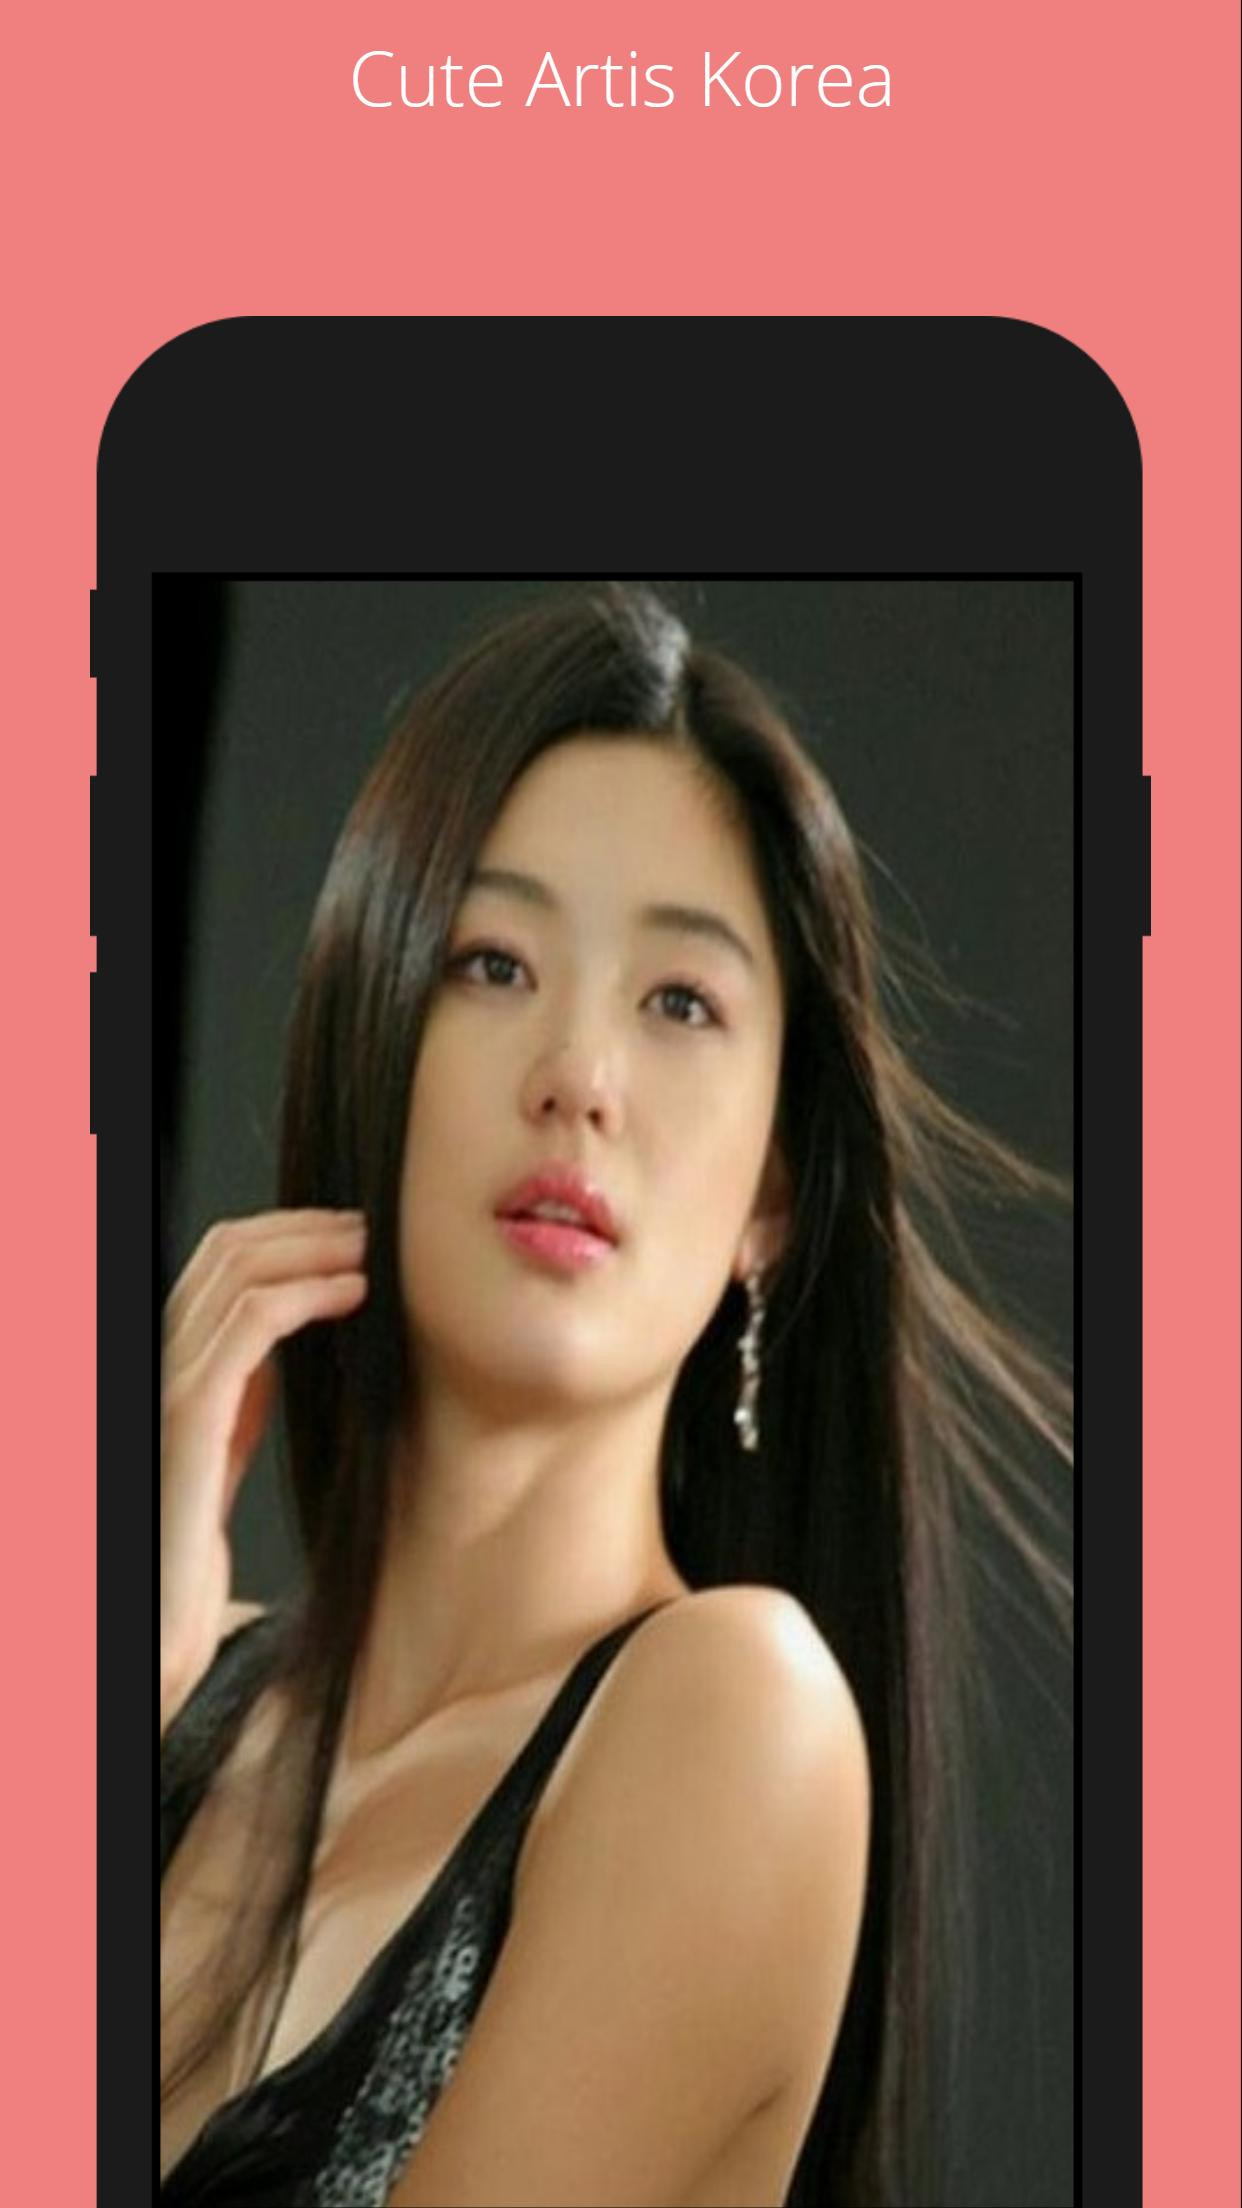 Artis Korea Wallpaper For Android APK Download